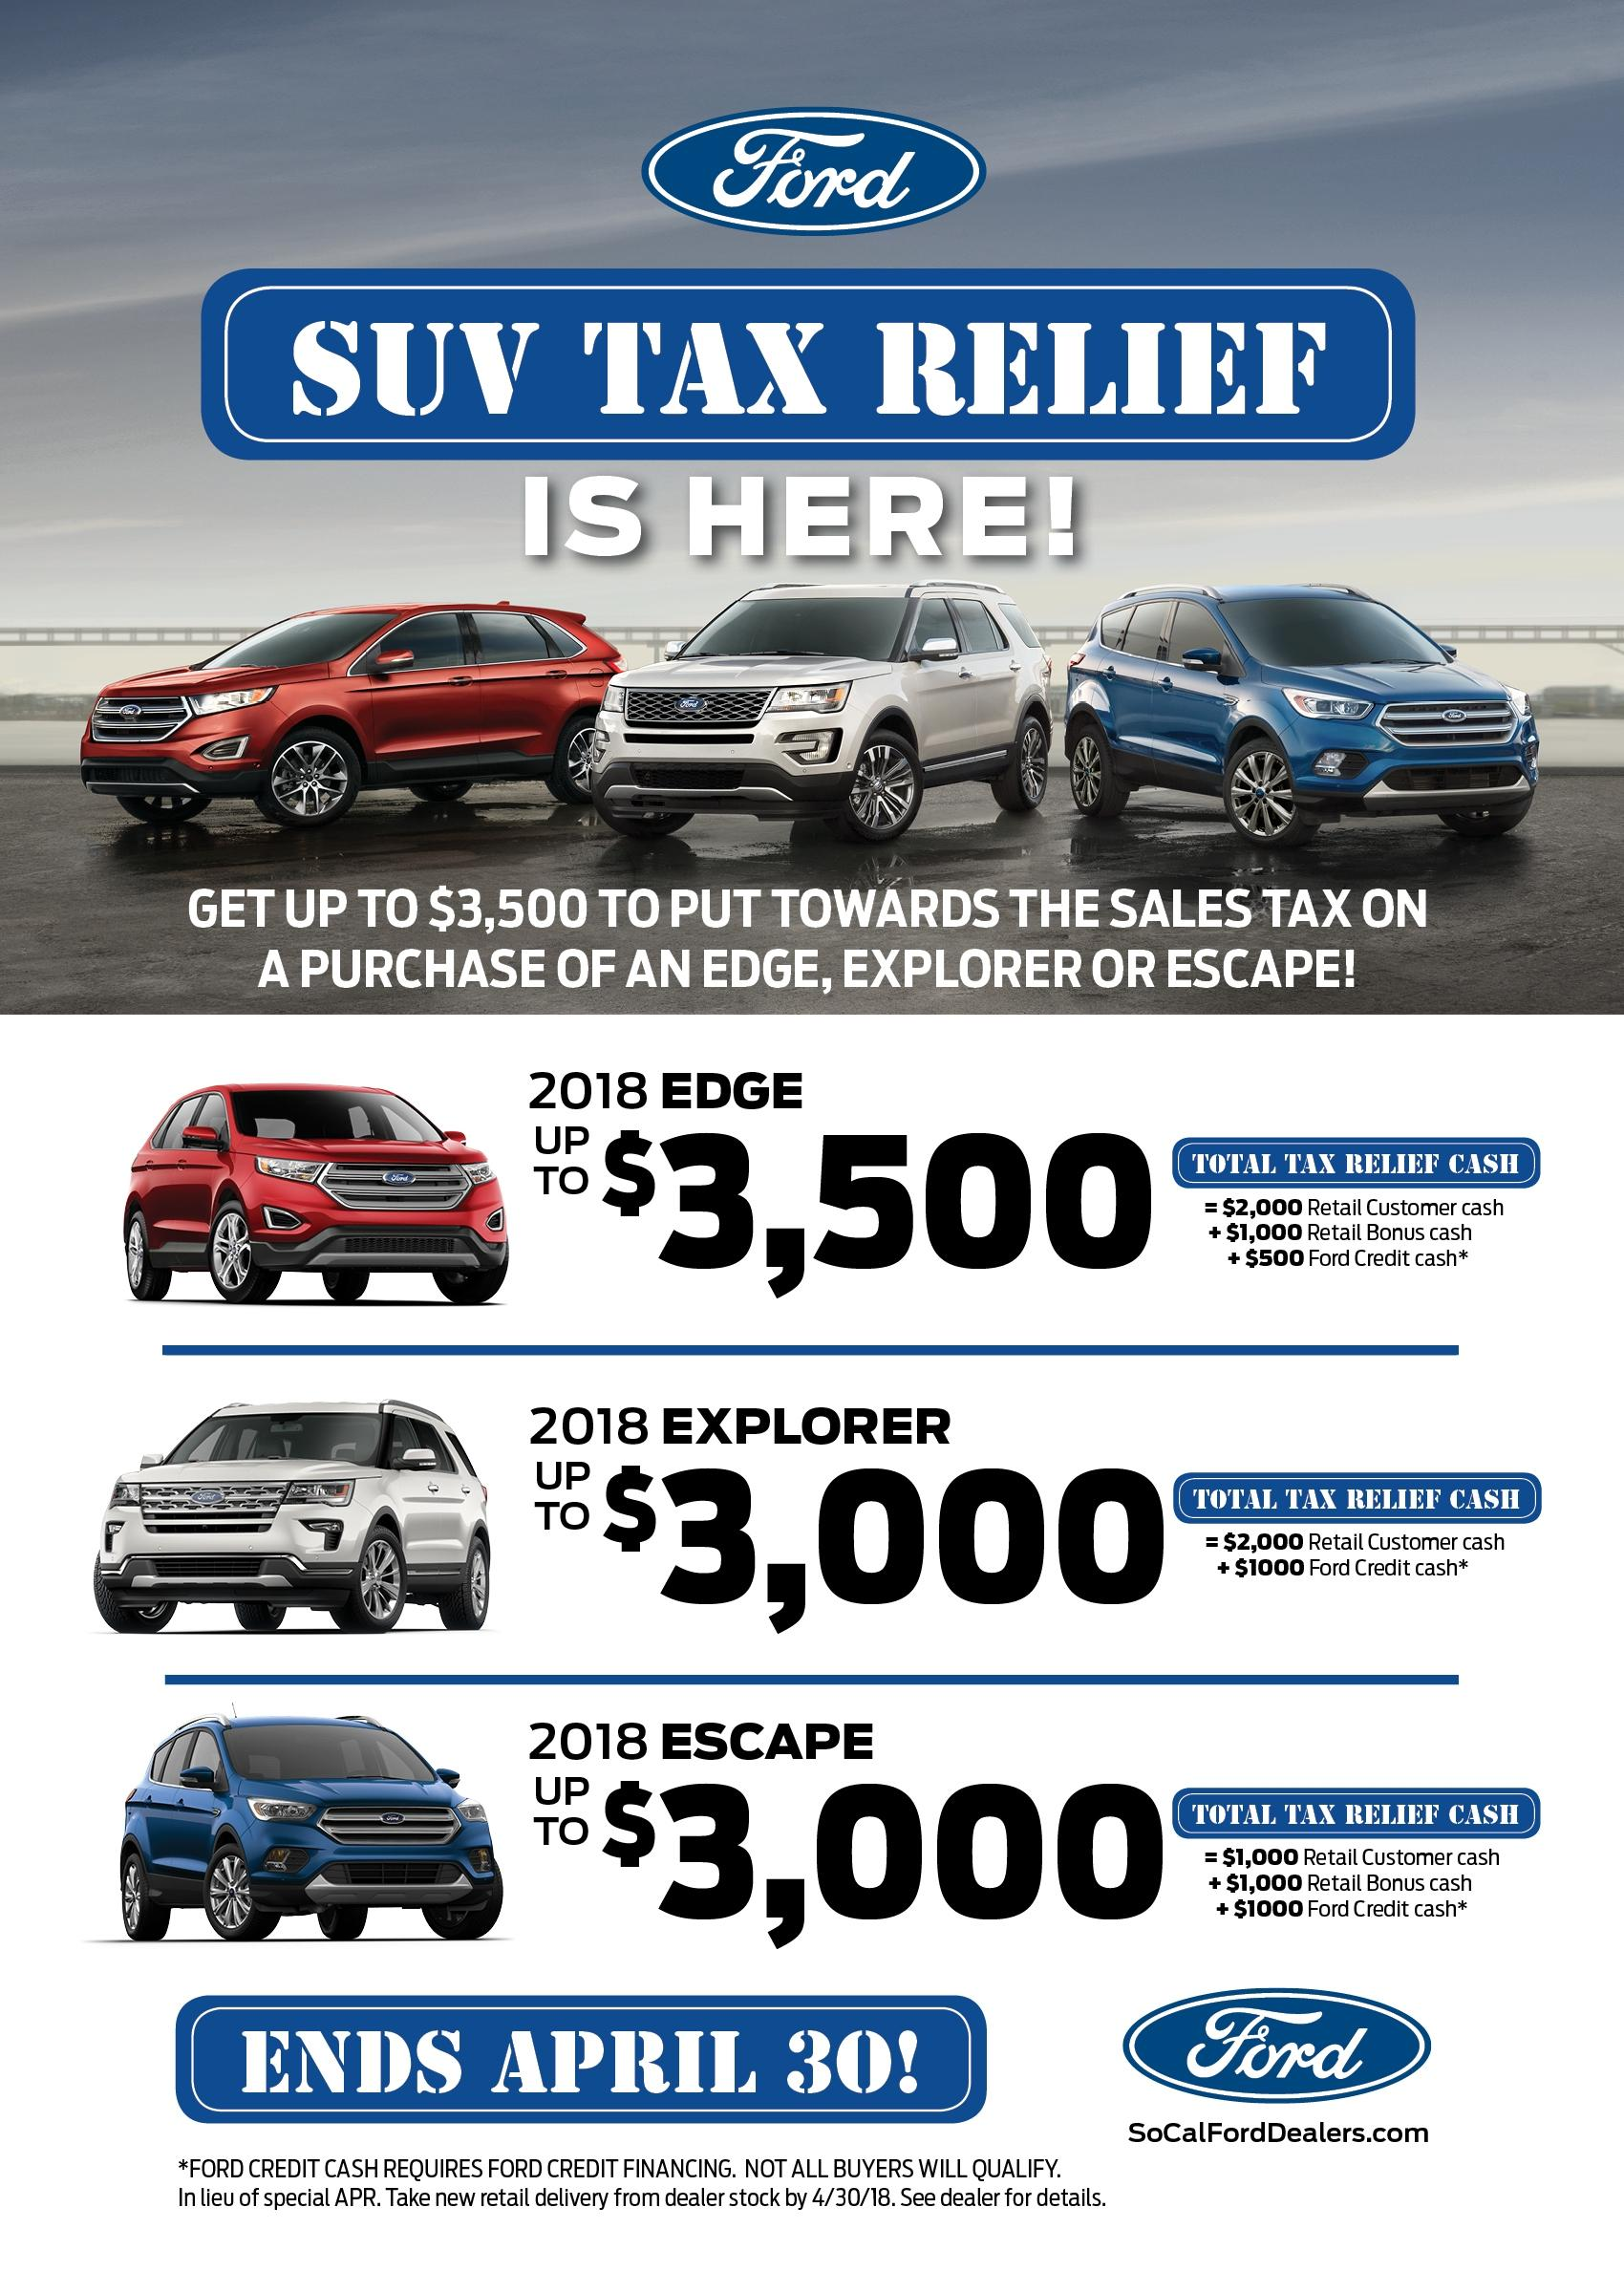 SUV Tax Relief